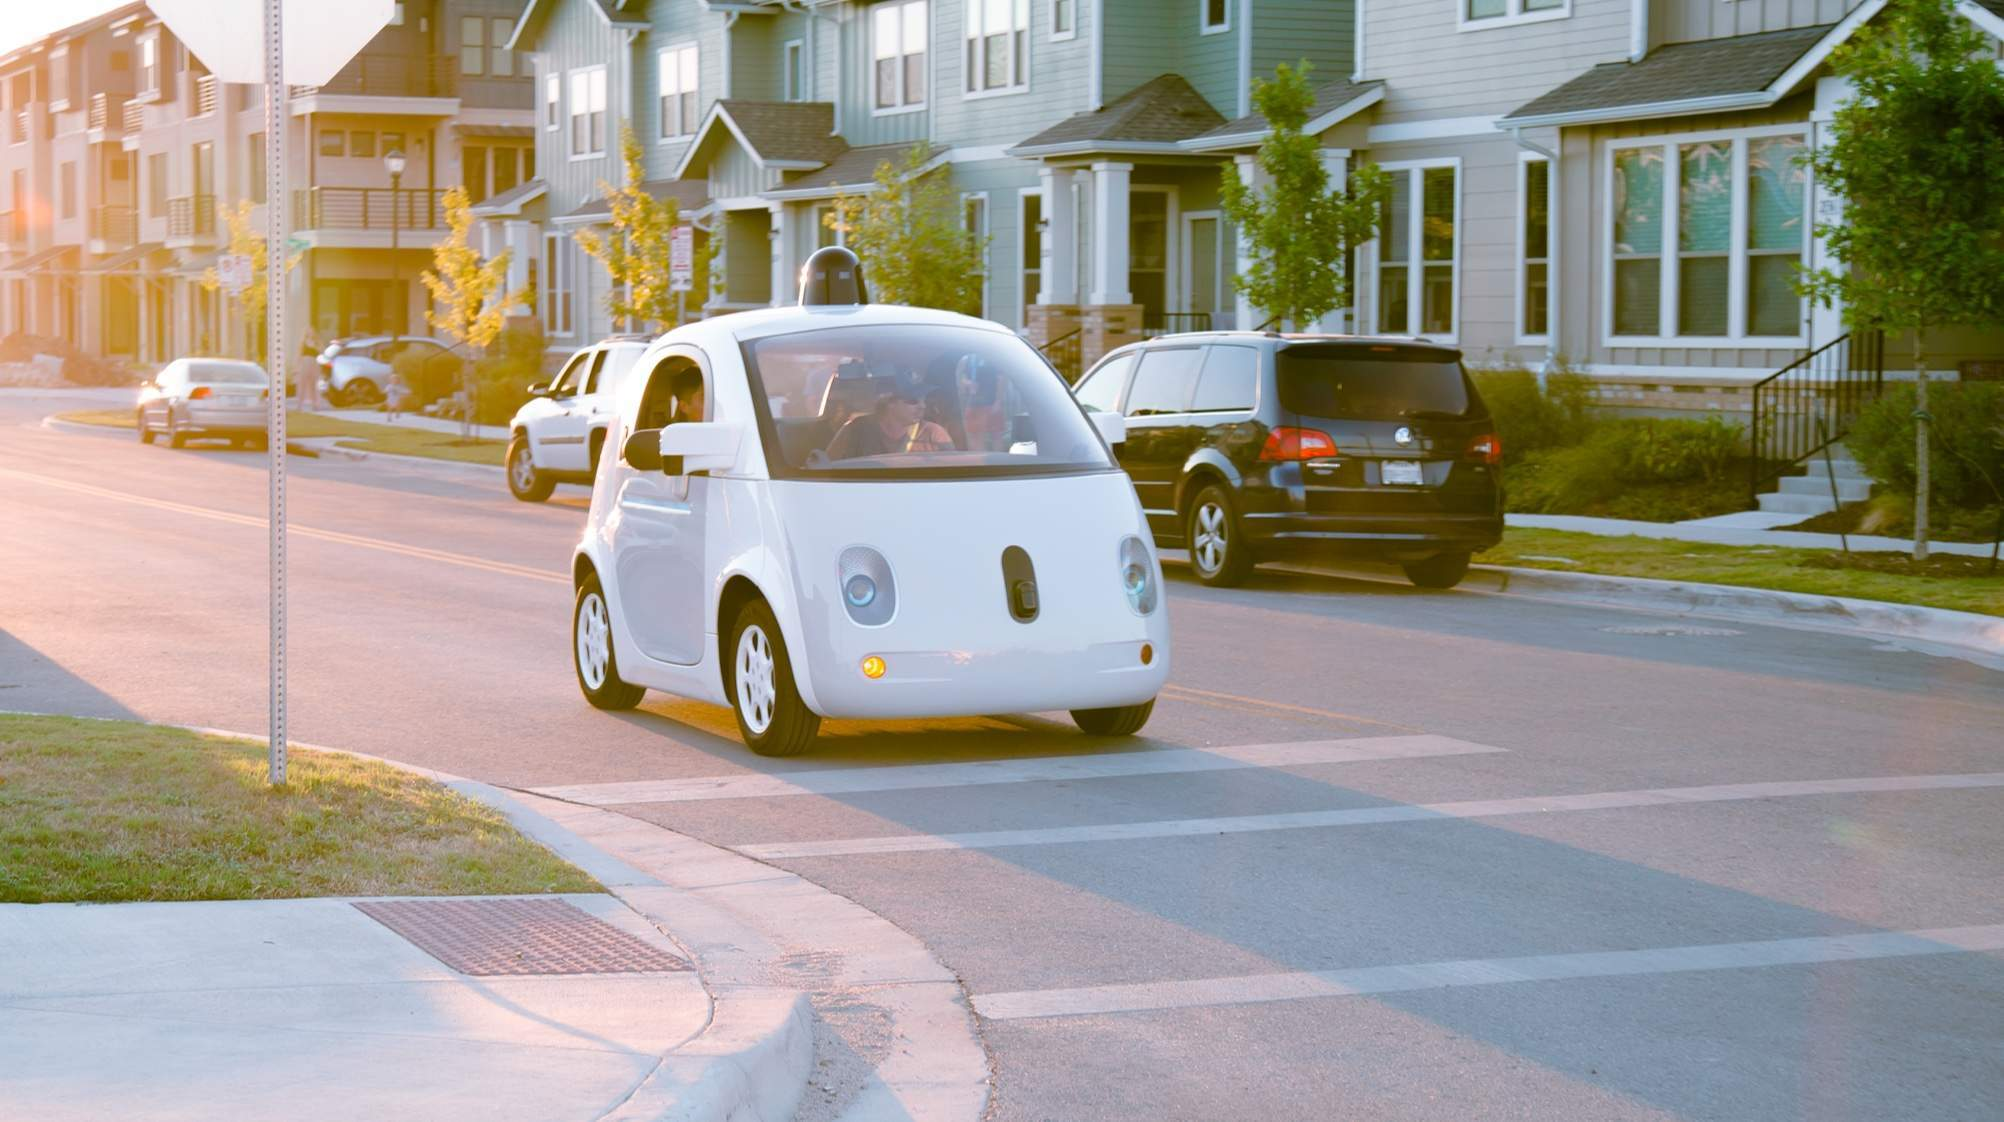 Alphabet is suing Uber for stealing its self-driving tech